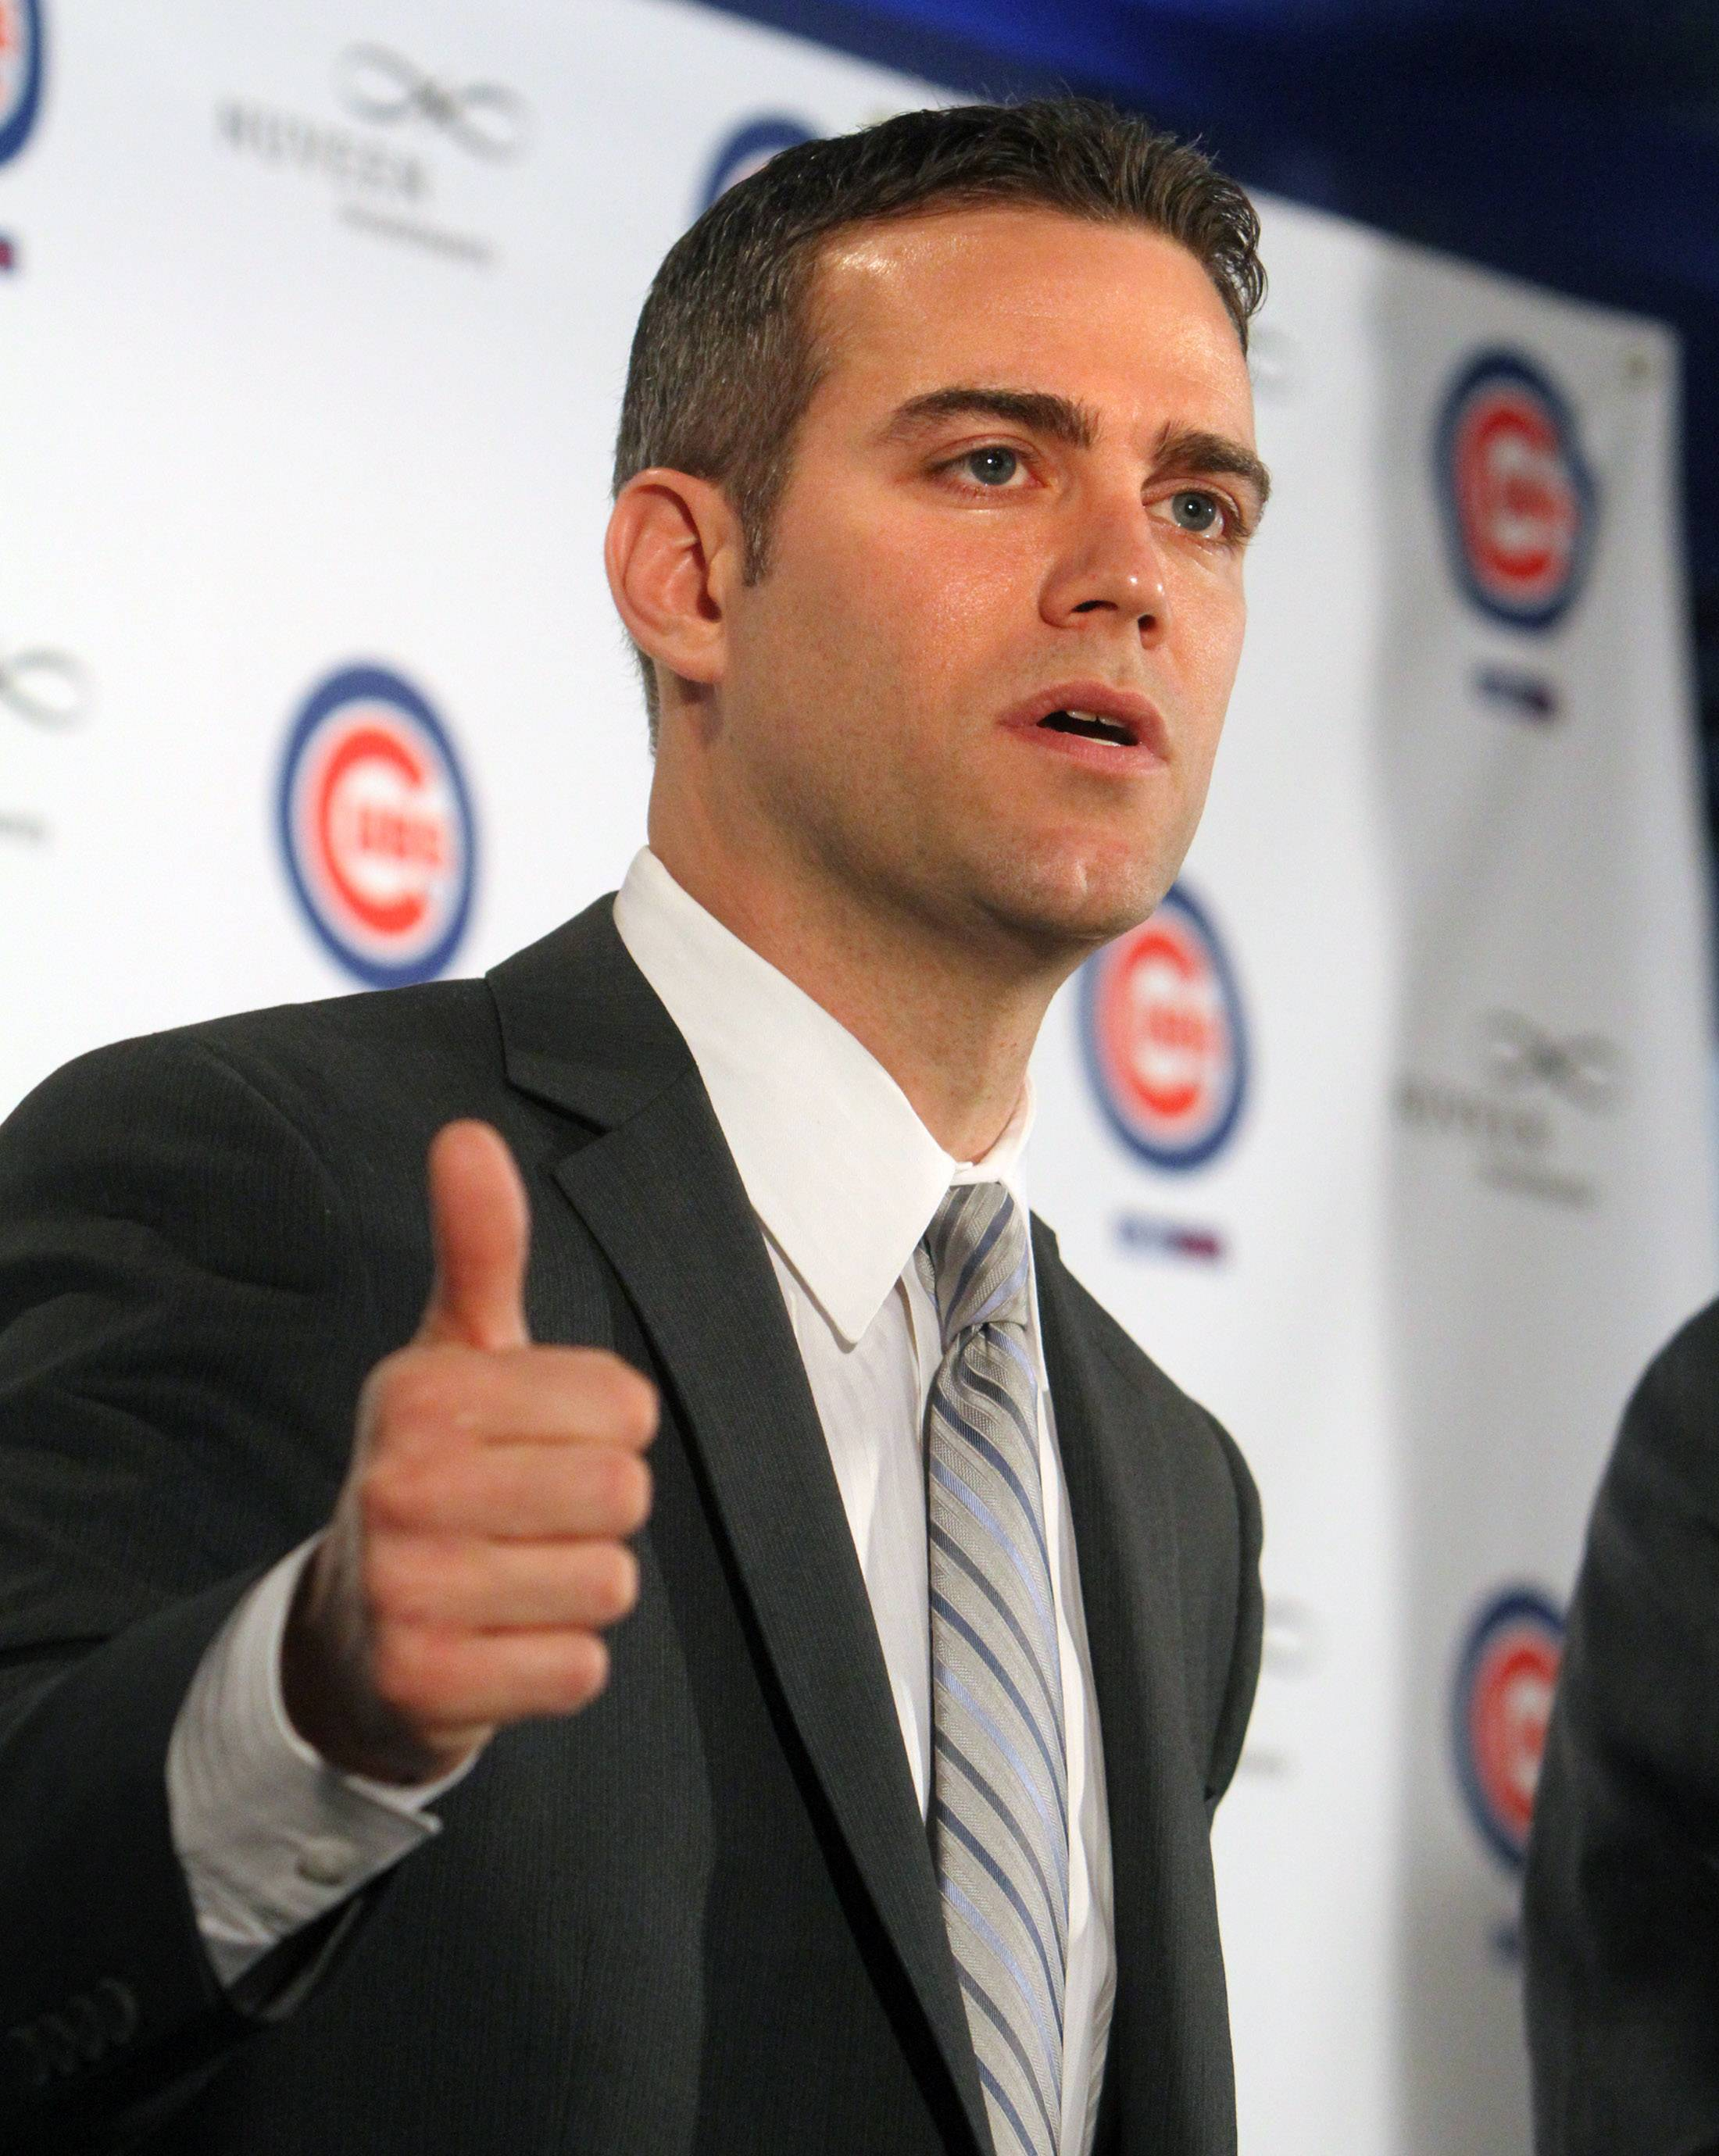 Theo Epstein, Chicago Cubs president of baseball operations, speaks during a news conference at Wrigley Field in Chicago on Tuesday, October 25th.